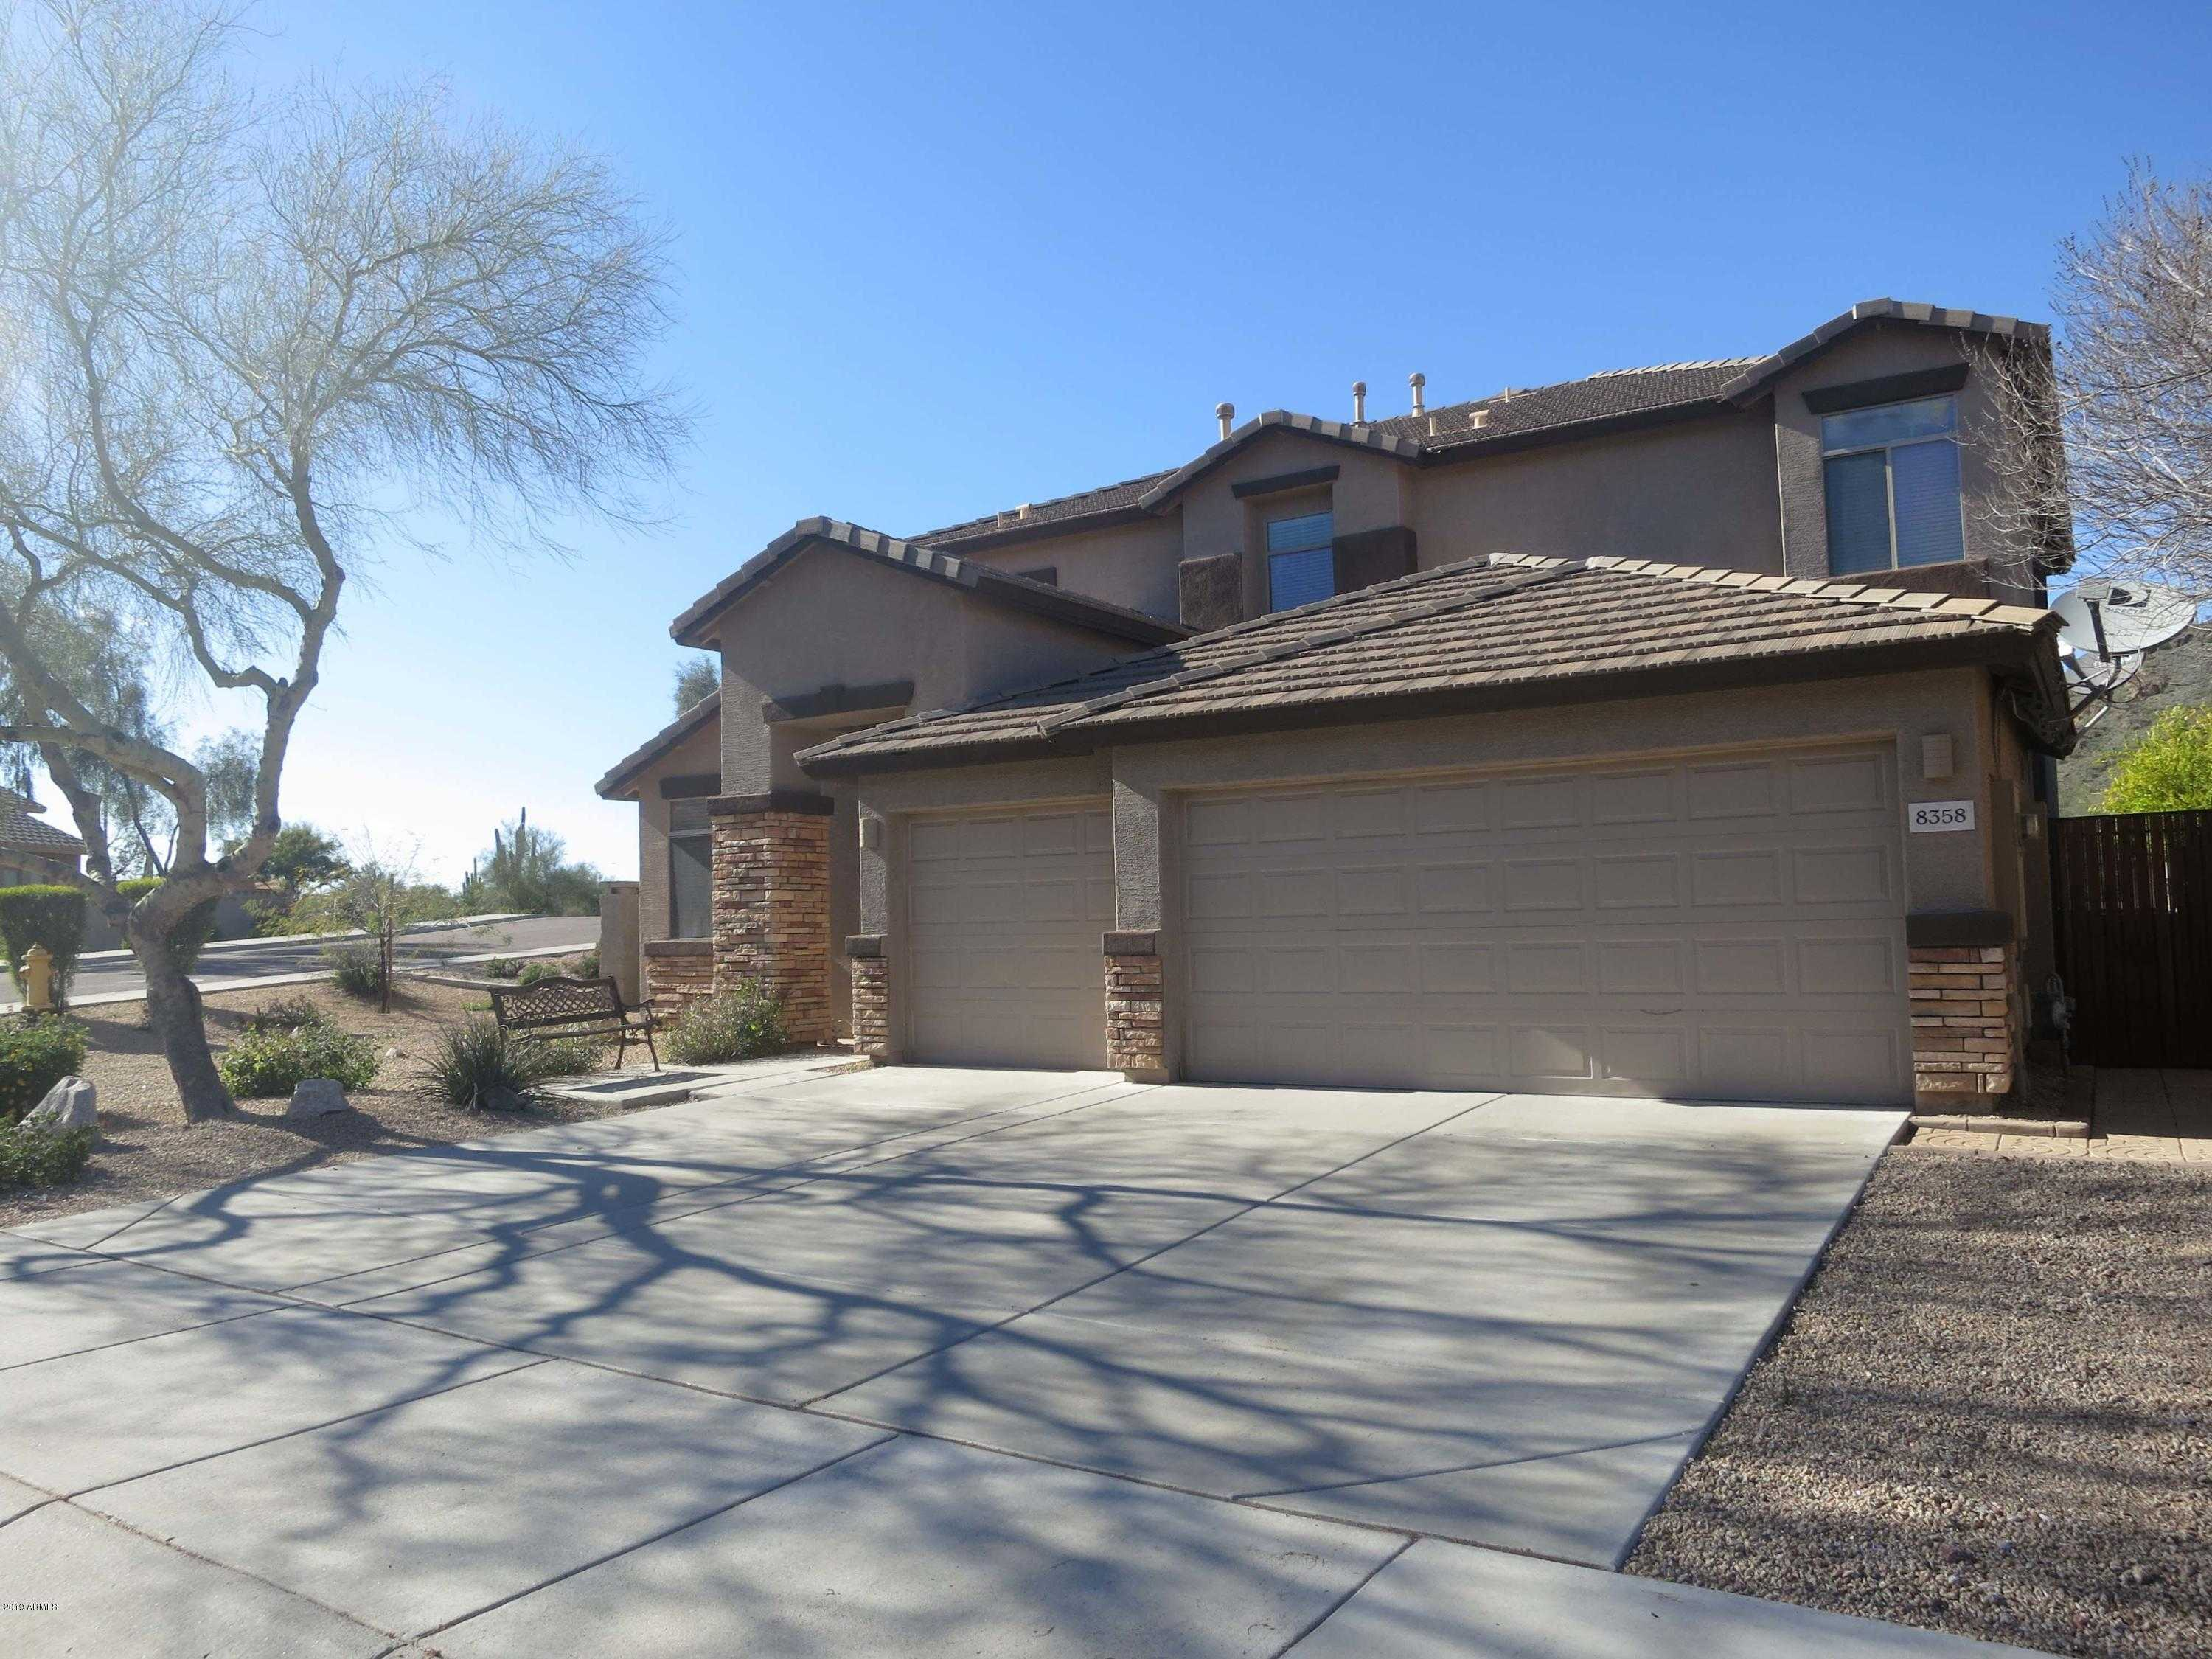 $400,000 - 4Br/3Ba - Home for Sale in Westwing Mountain Parcel 9, Peoria